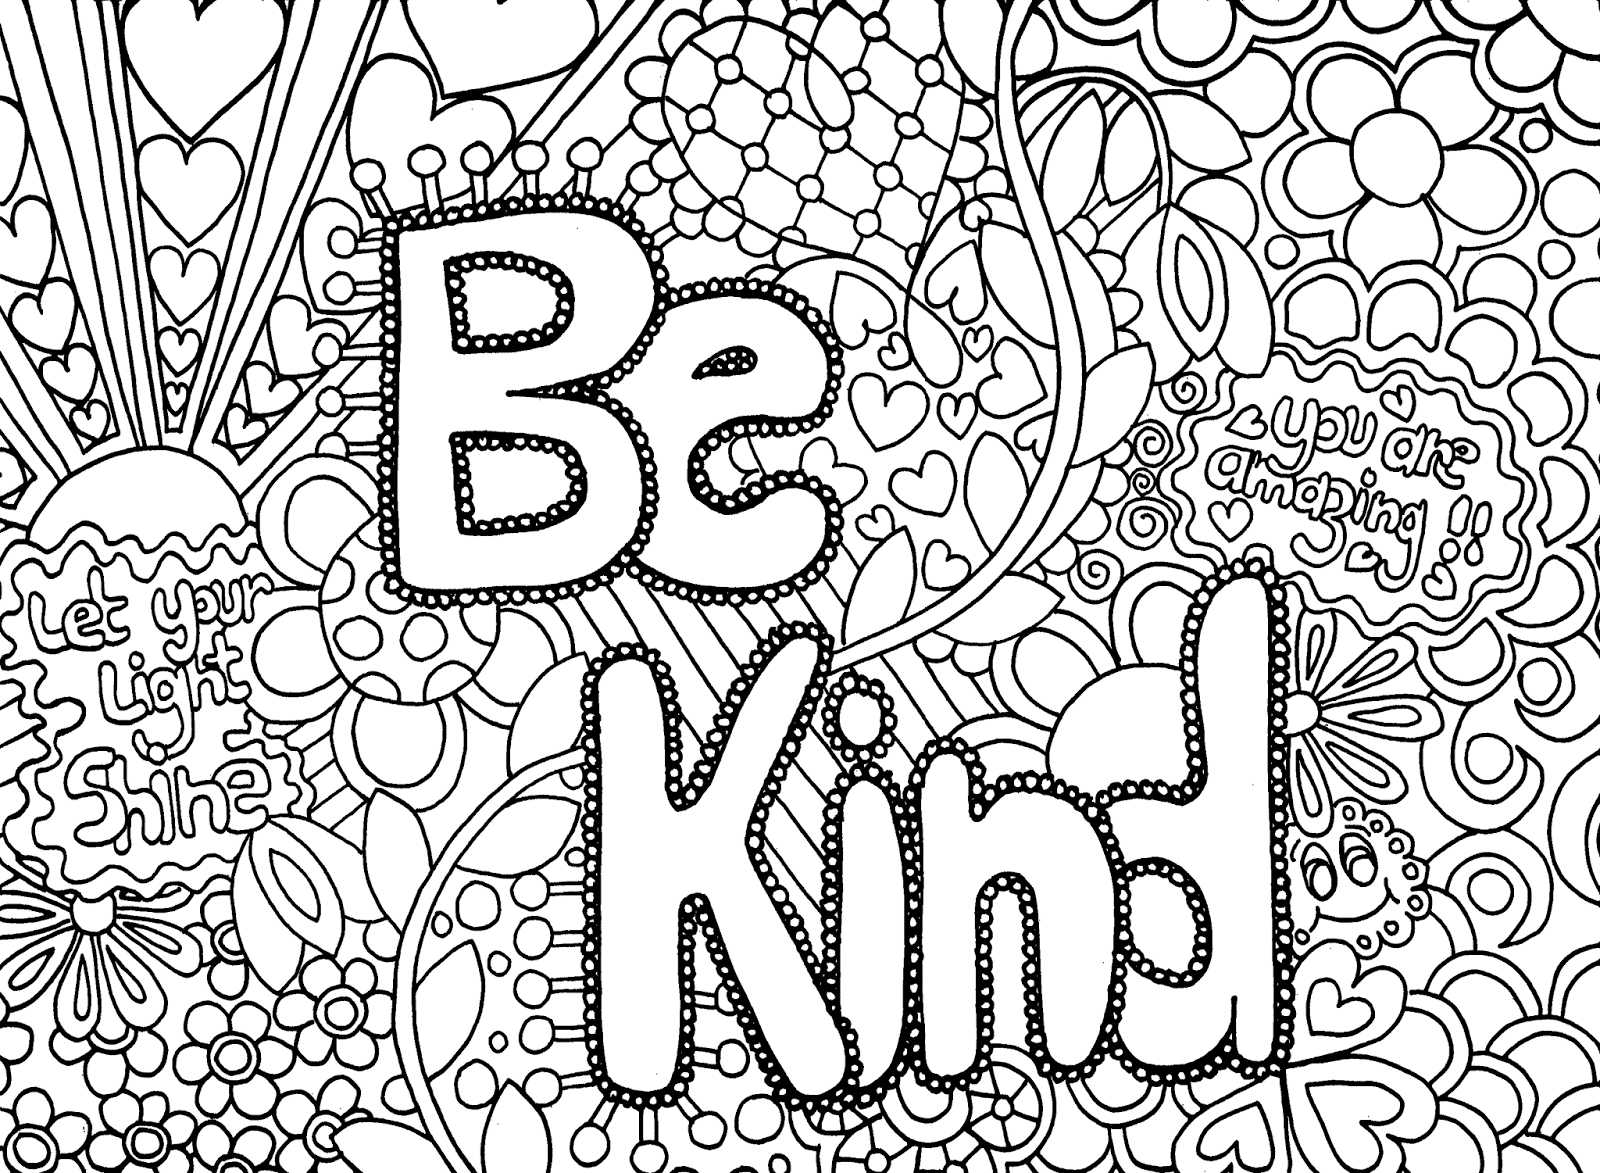 books - Coloring Books For Teens